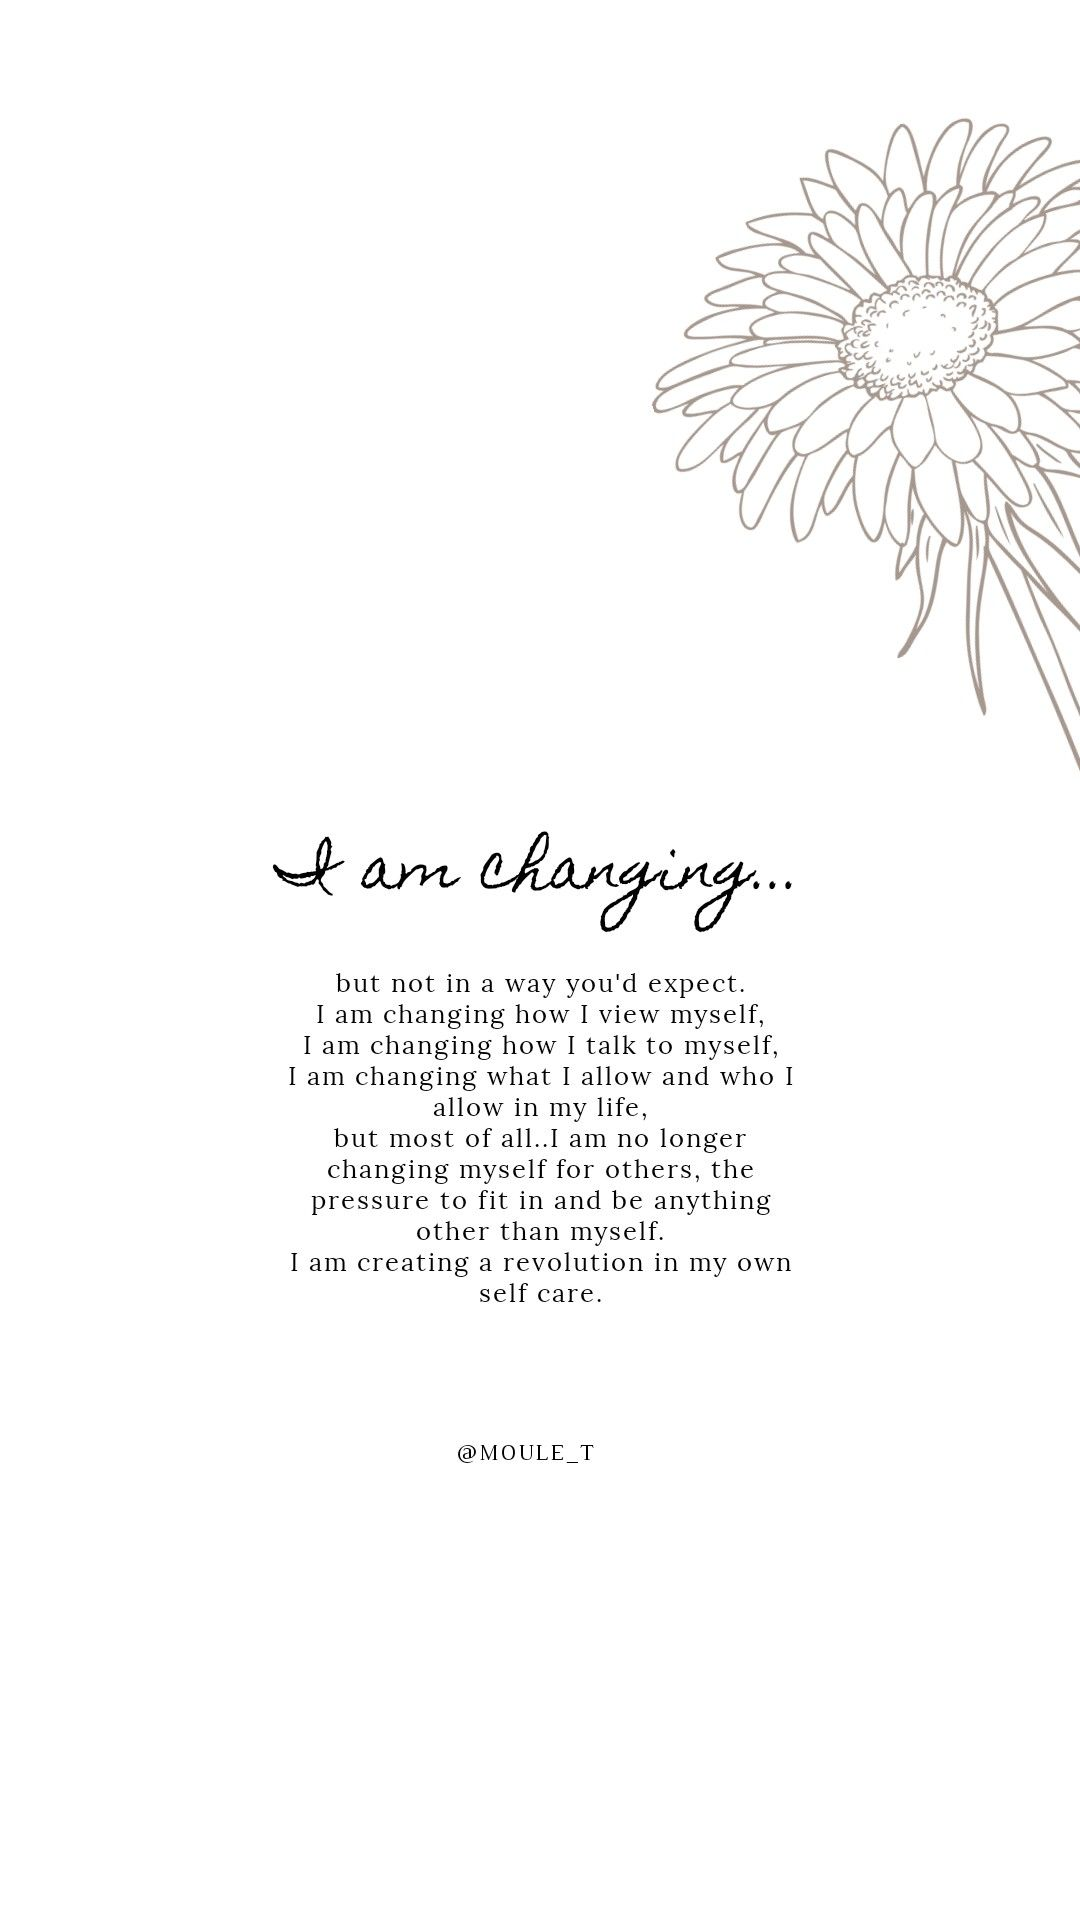 I am changing, for me, and creating a revolution in my own self care